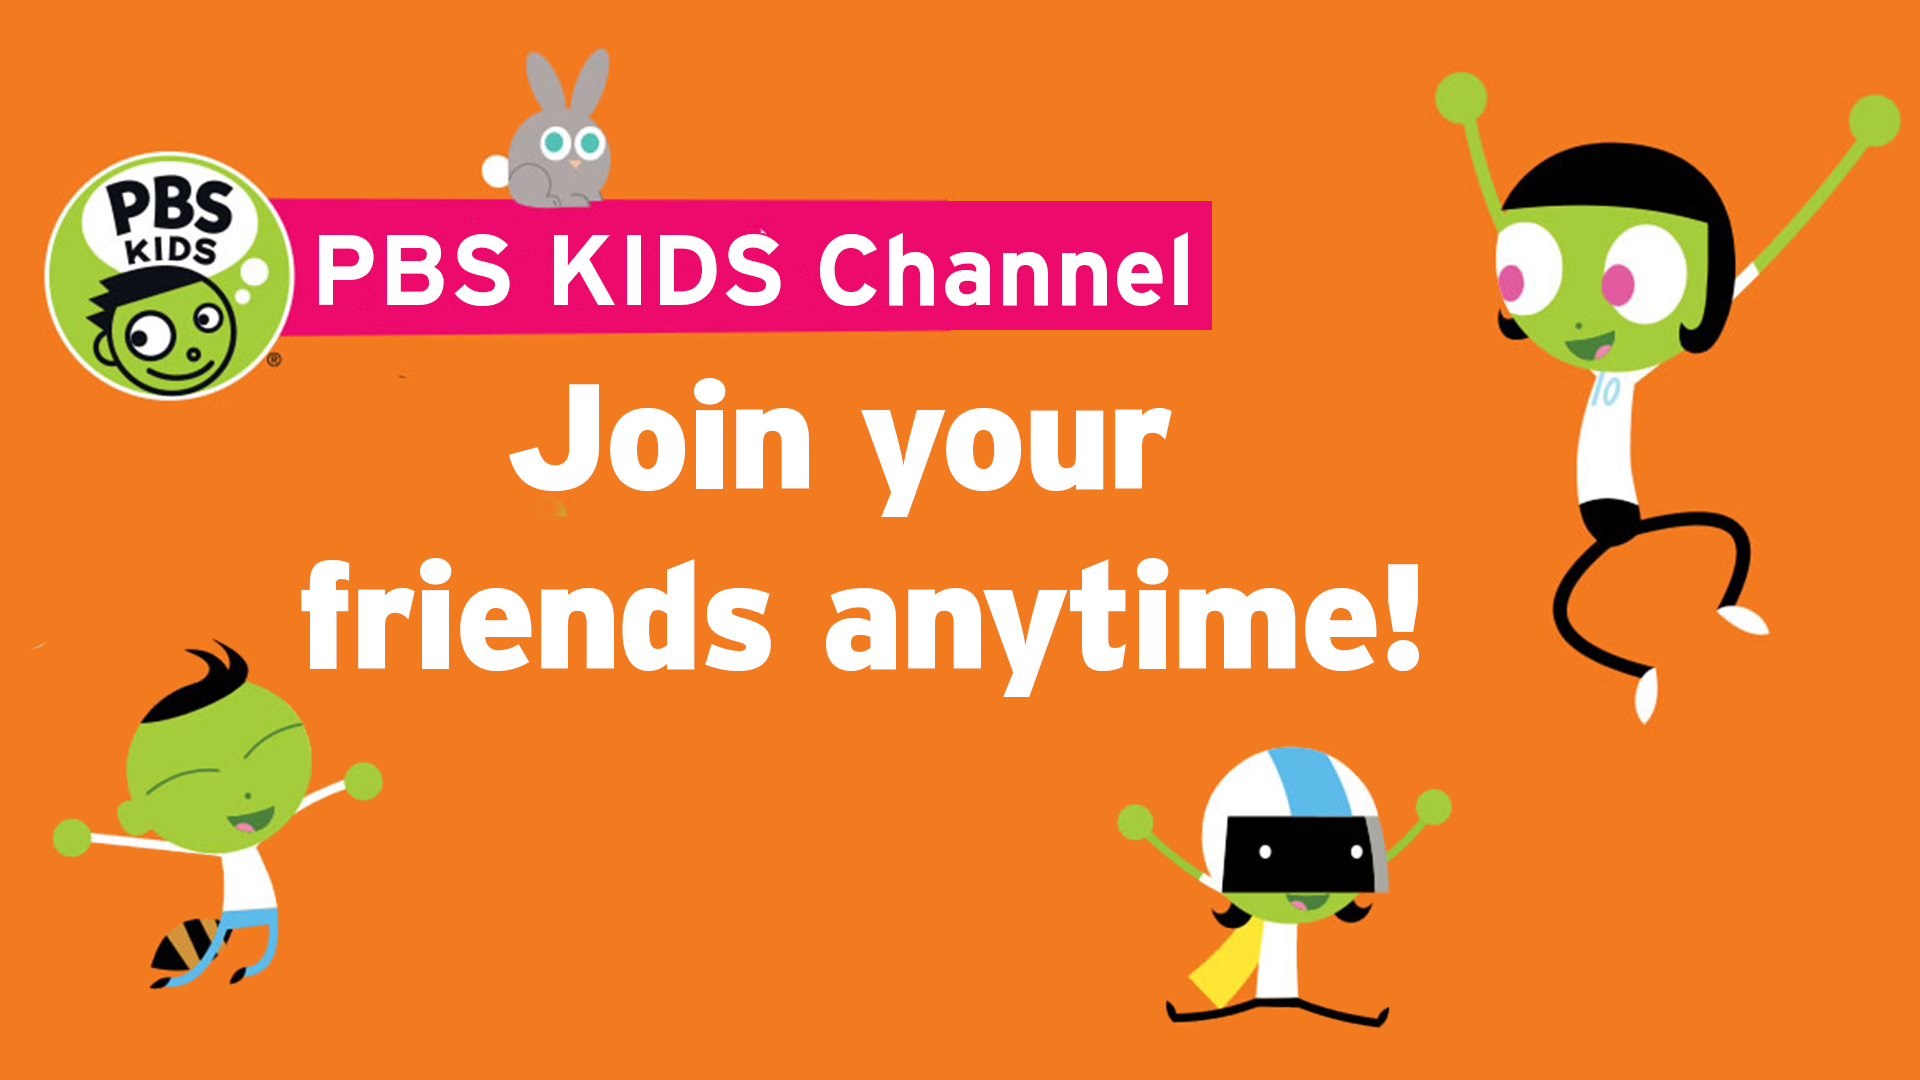 24/7 PBS KIDS CHANNEL AND LIVE STREAM!